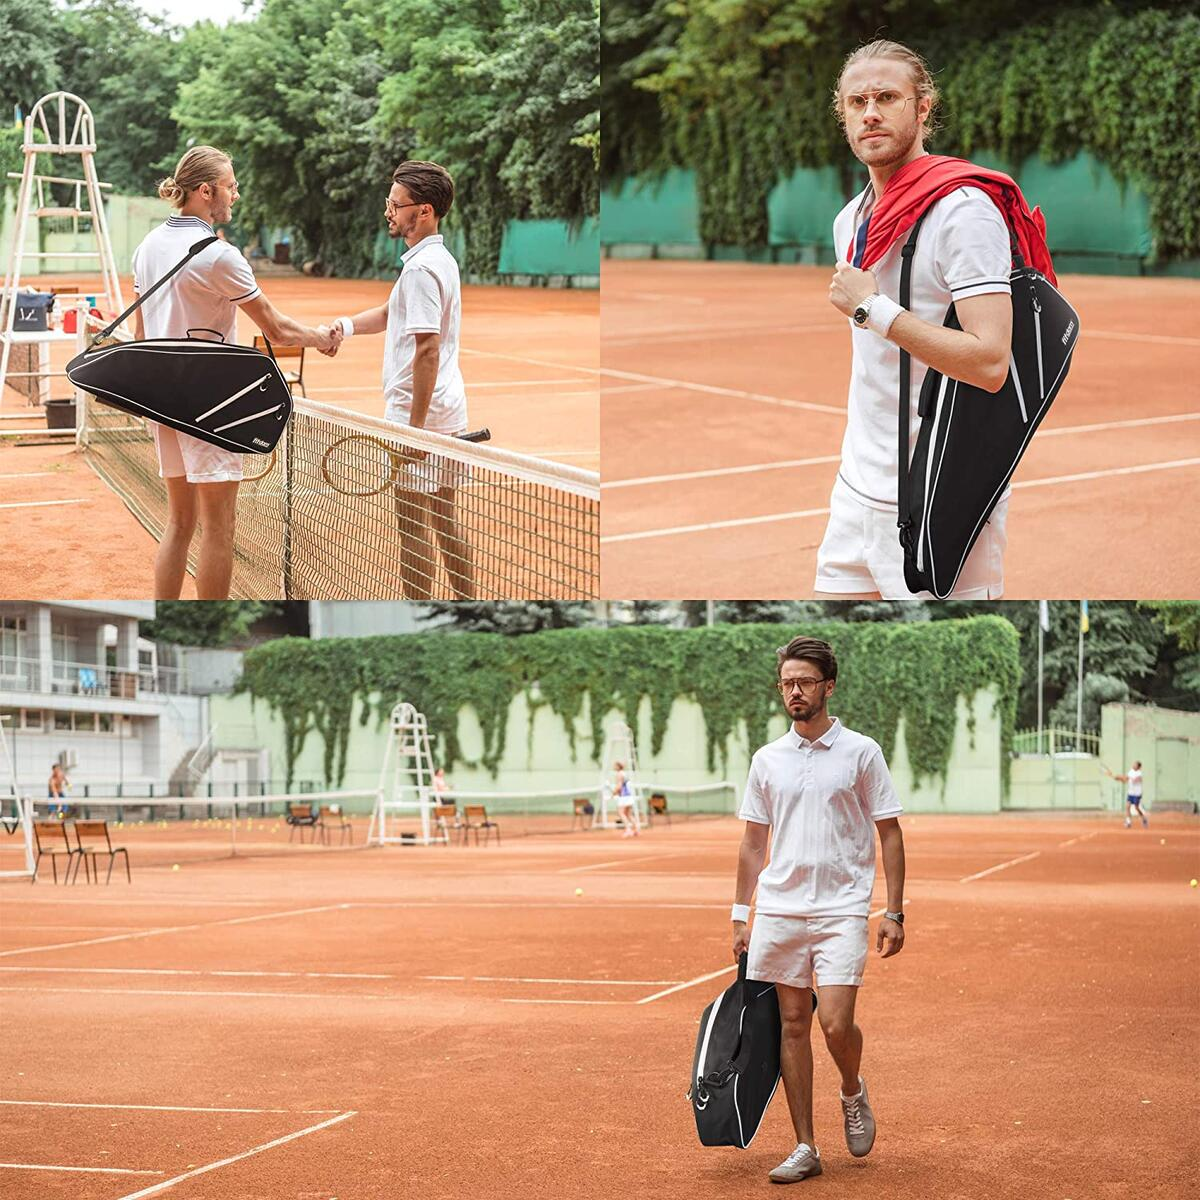 Fitdom Black Tennis Racket Bag - Can Carry Up to 3 Racquets. Perfect for Men, Women, Junior & Kids. Made from Heavy Duty Zipper & Durable Exterior for Your Gears, Towels, Balls and Accessories.